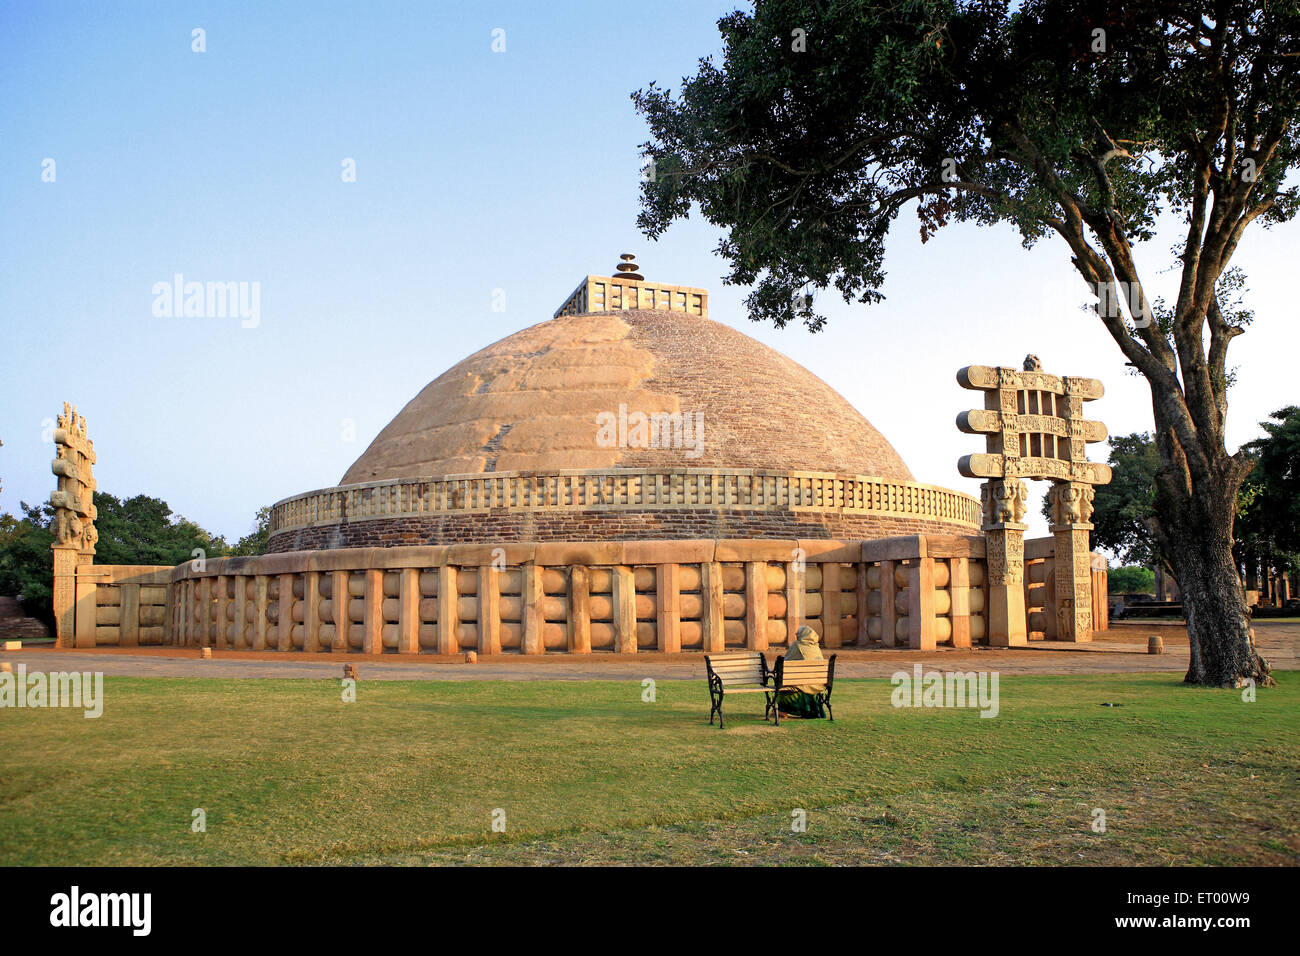 Sanchi Stupa Wallpaper Hd: Stupa Sanchi Stock Photos & Stupa Sanchi Stock Images